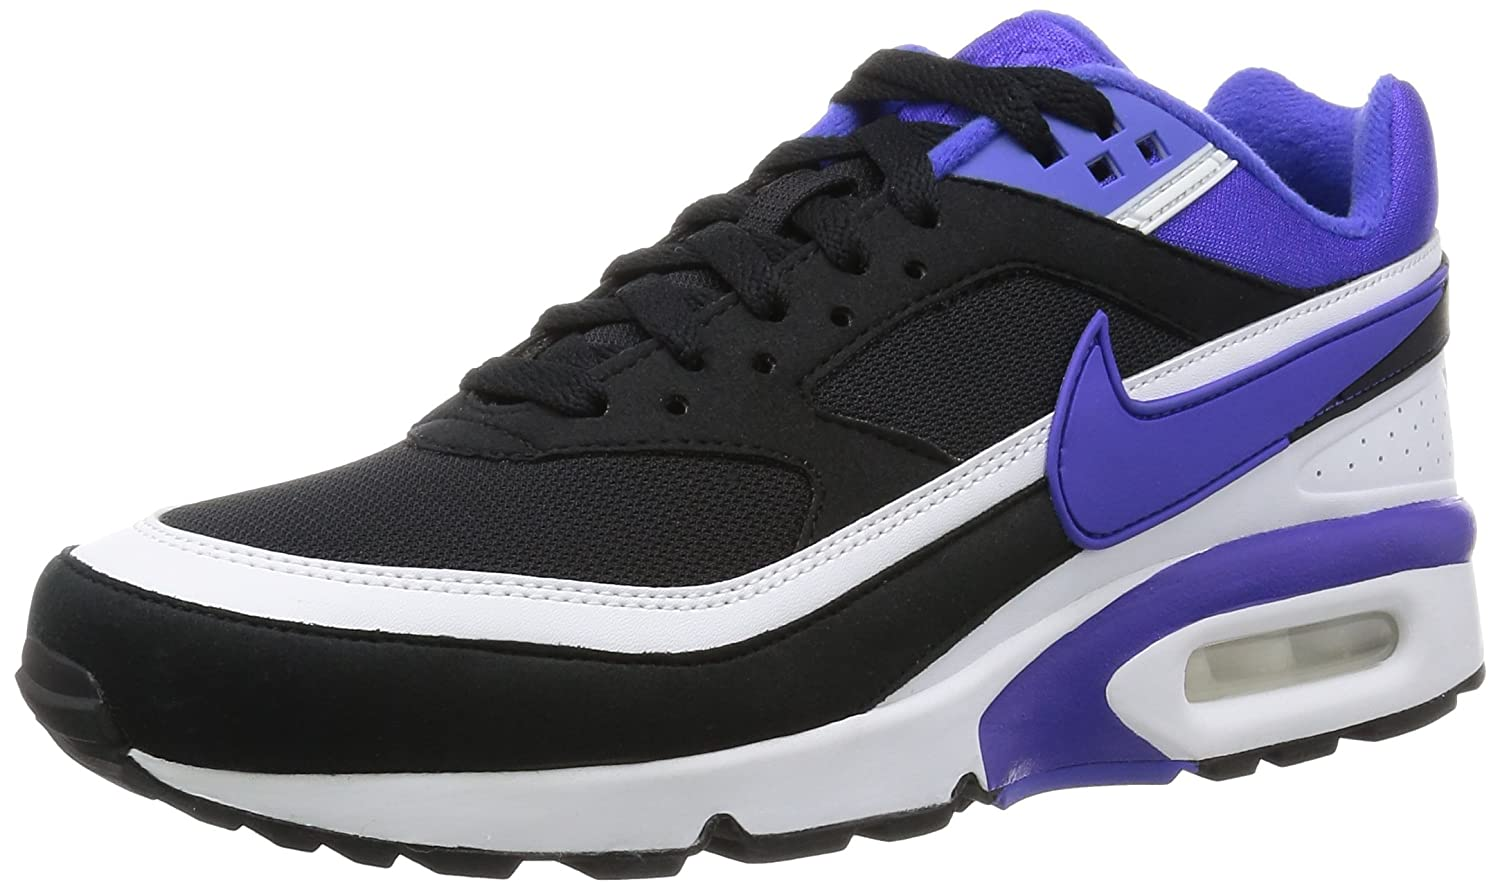 Royaume-Uni disponibilité bef3f 19164 AIR MAX BW OG 'PERSIAN VIOLET 2016 RELEASE' - 819522-051 ...